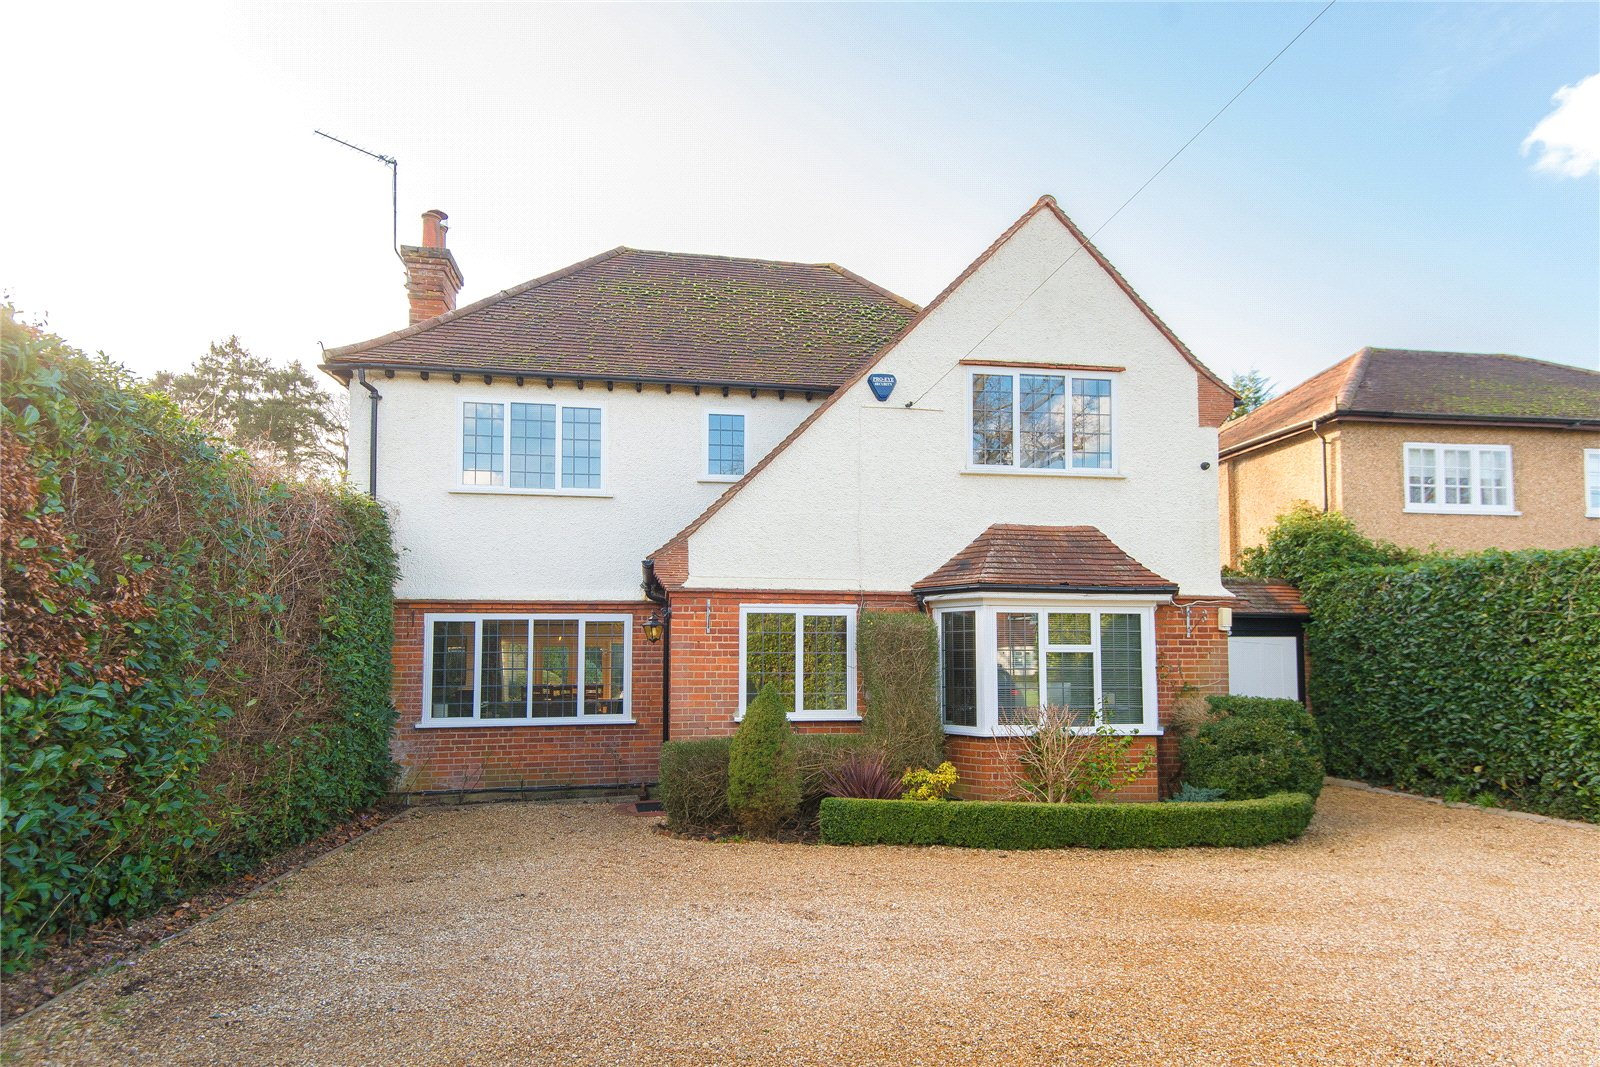 獨棟家庭住宅 為 出售 在 Fulmer Road, Gerrards Cross, Buckinghamshire, SL9 Gerrards Cross, 英格蘭